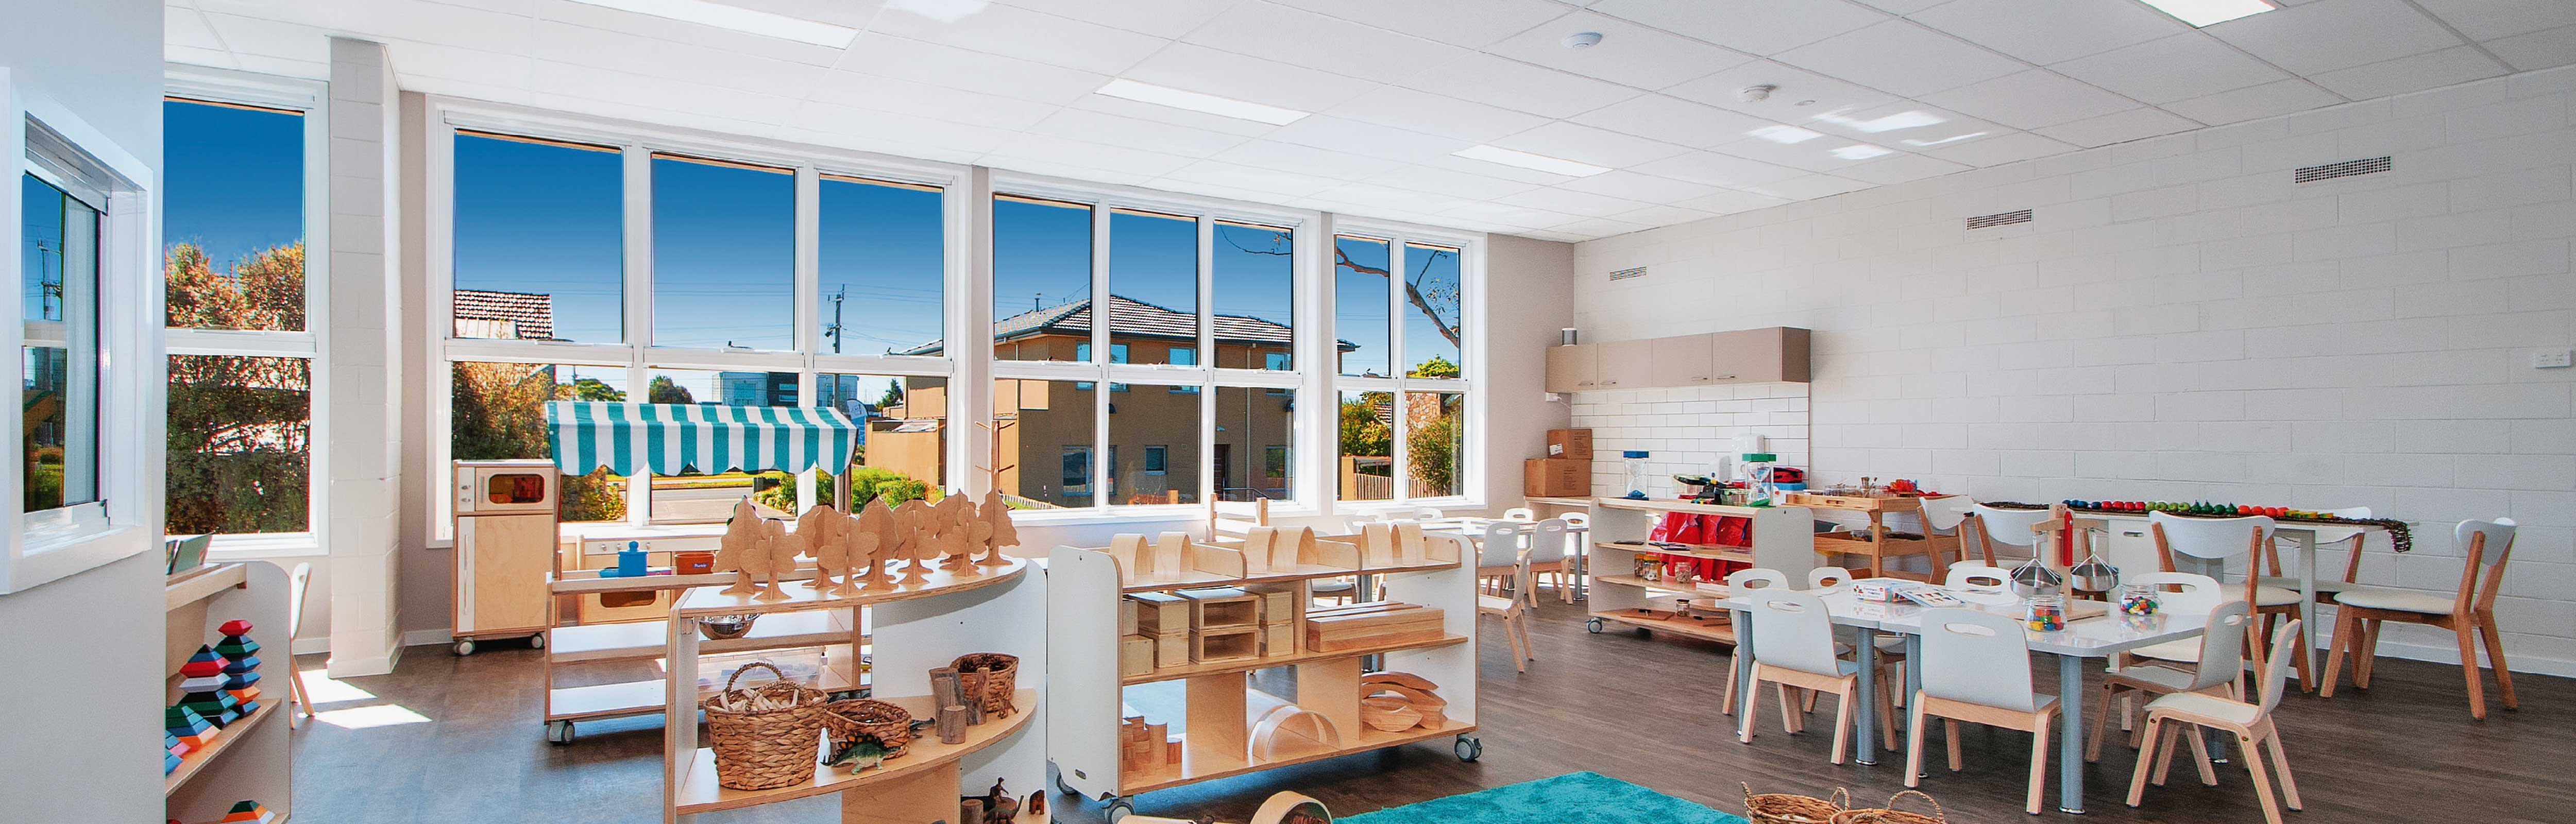 White Aluminium Awning Windows in a childcare centre